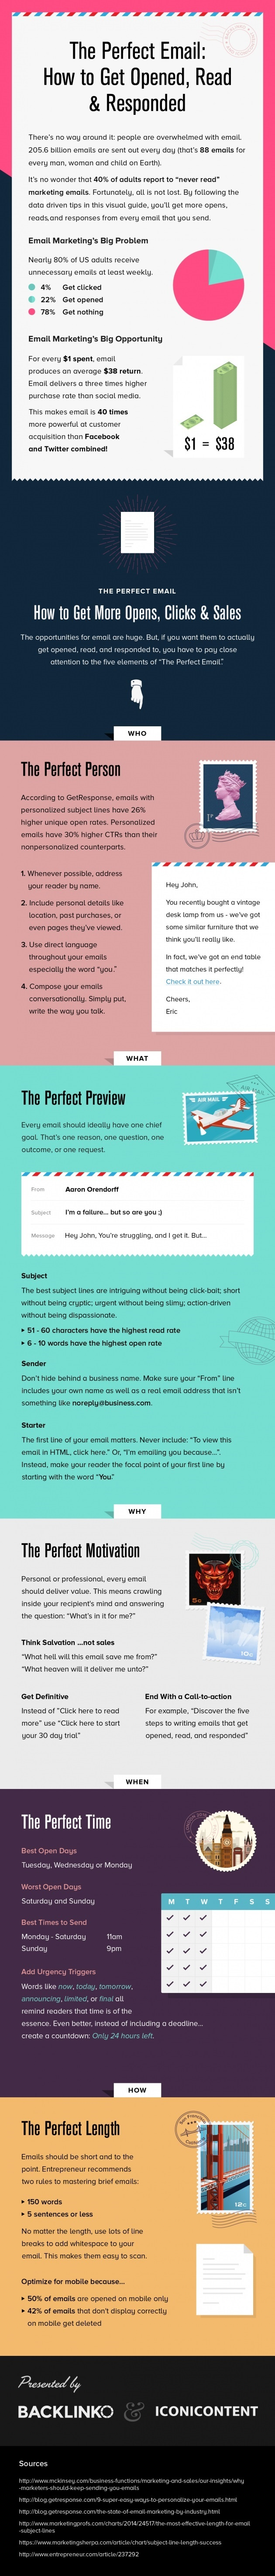 writing-the-perfect-email-infographic